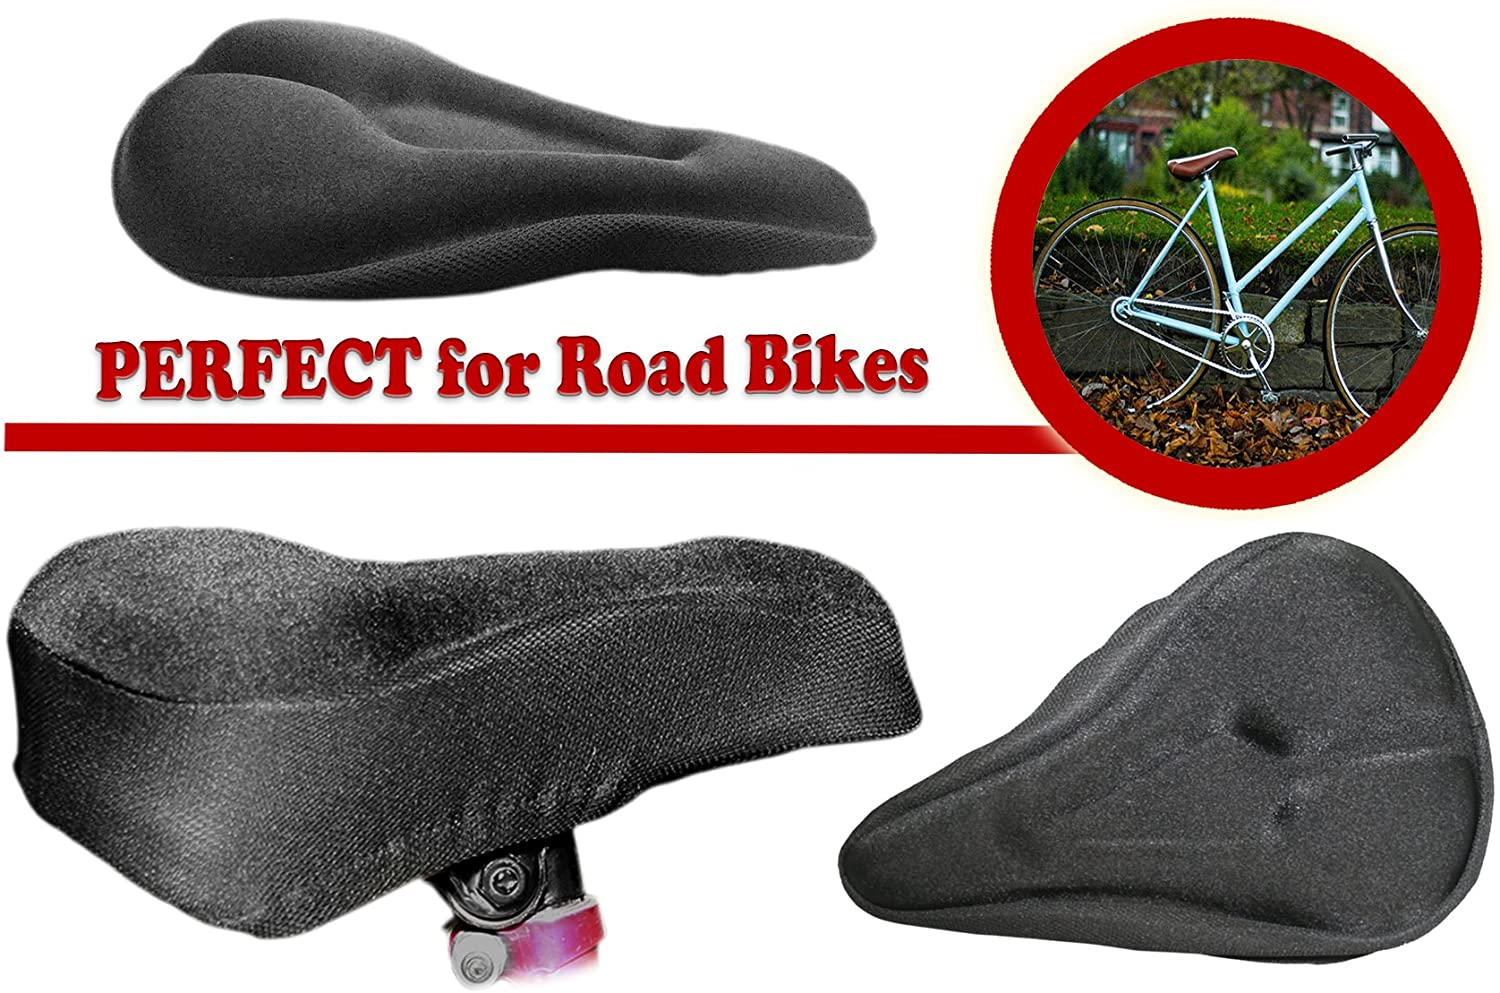 Covers For The Home Bicycle Accessories